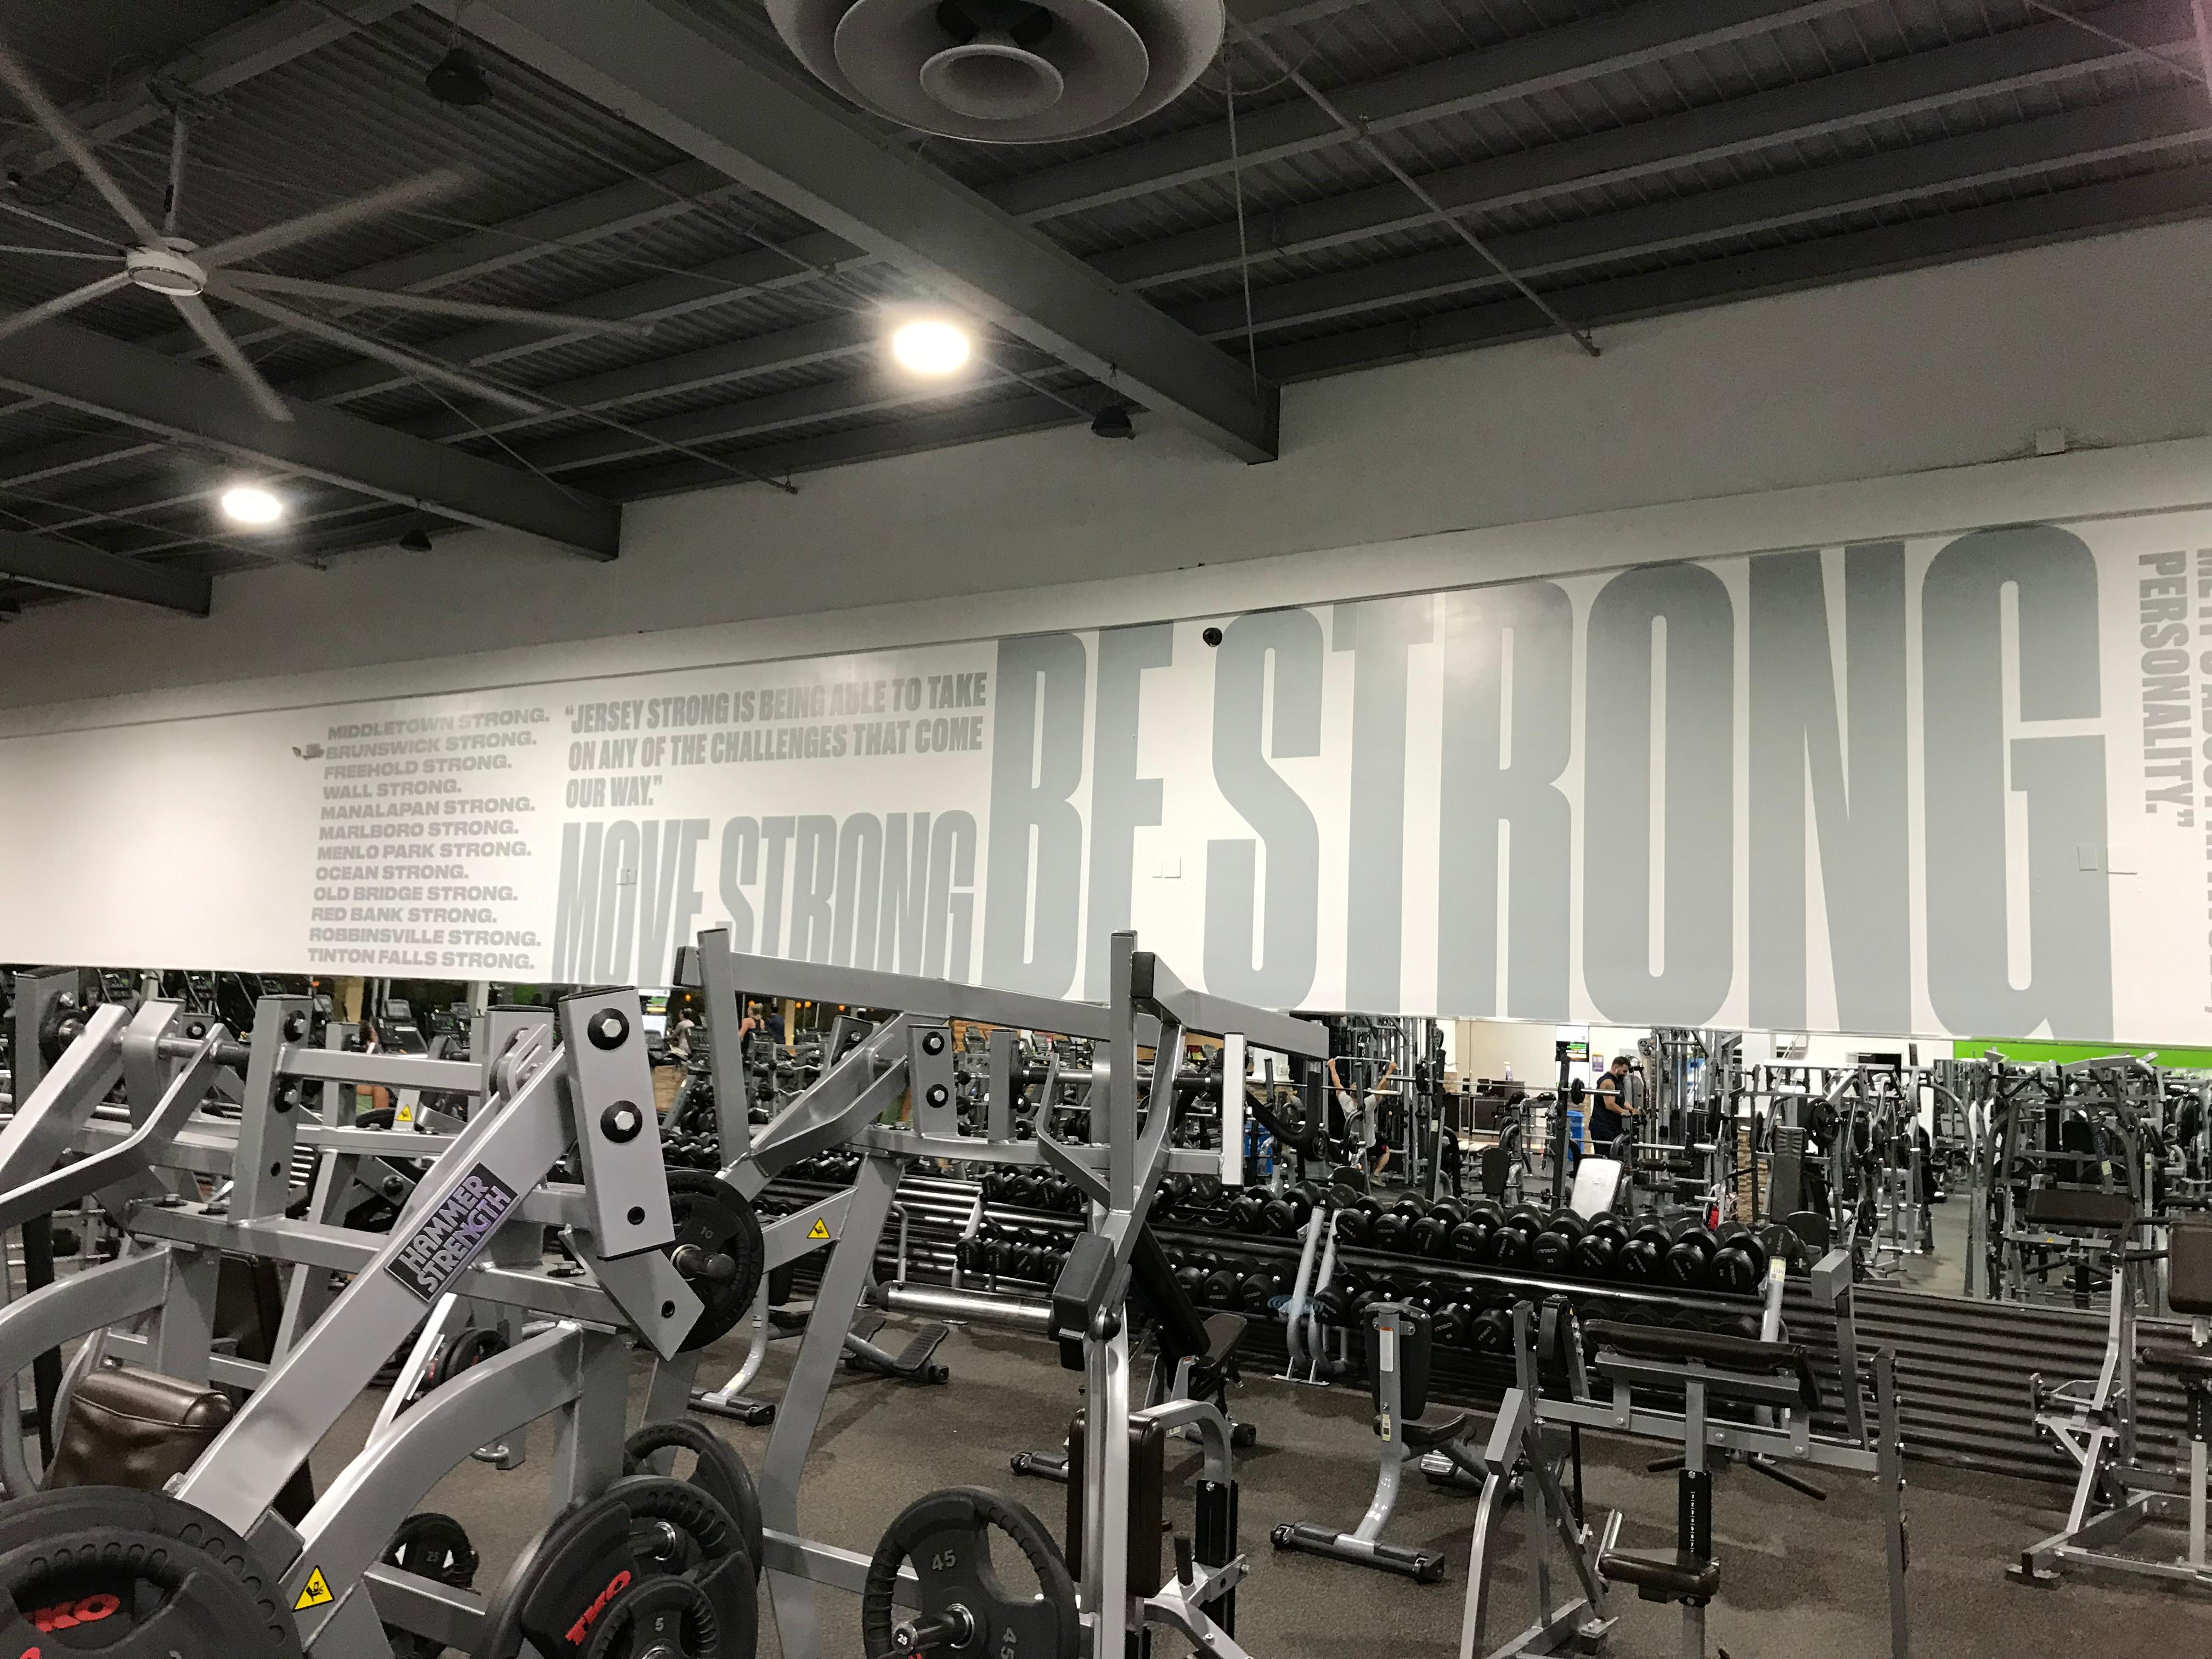 Jersey Strong Gym 2685 County Rd 516 Old Bridge Nj Health Clubs Gyms Mapquest